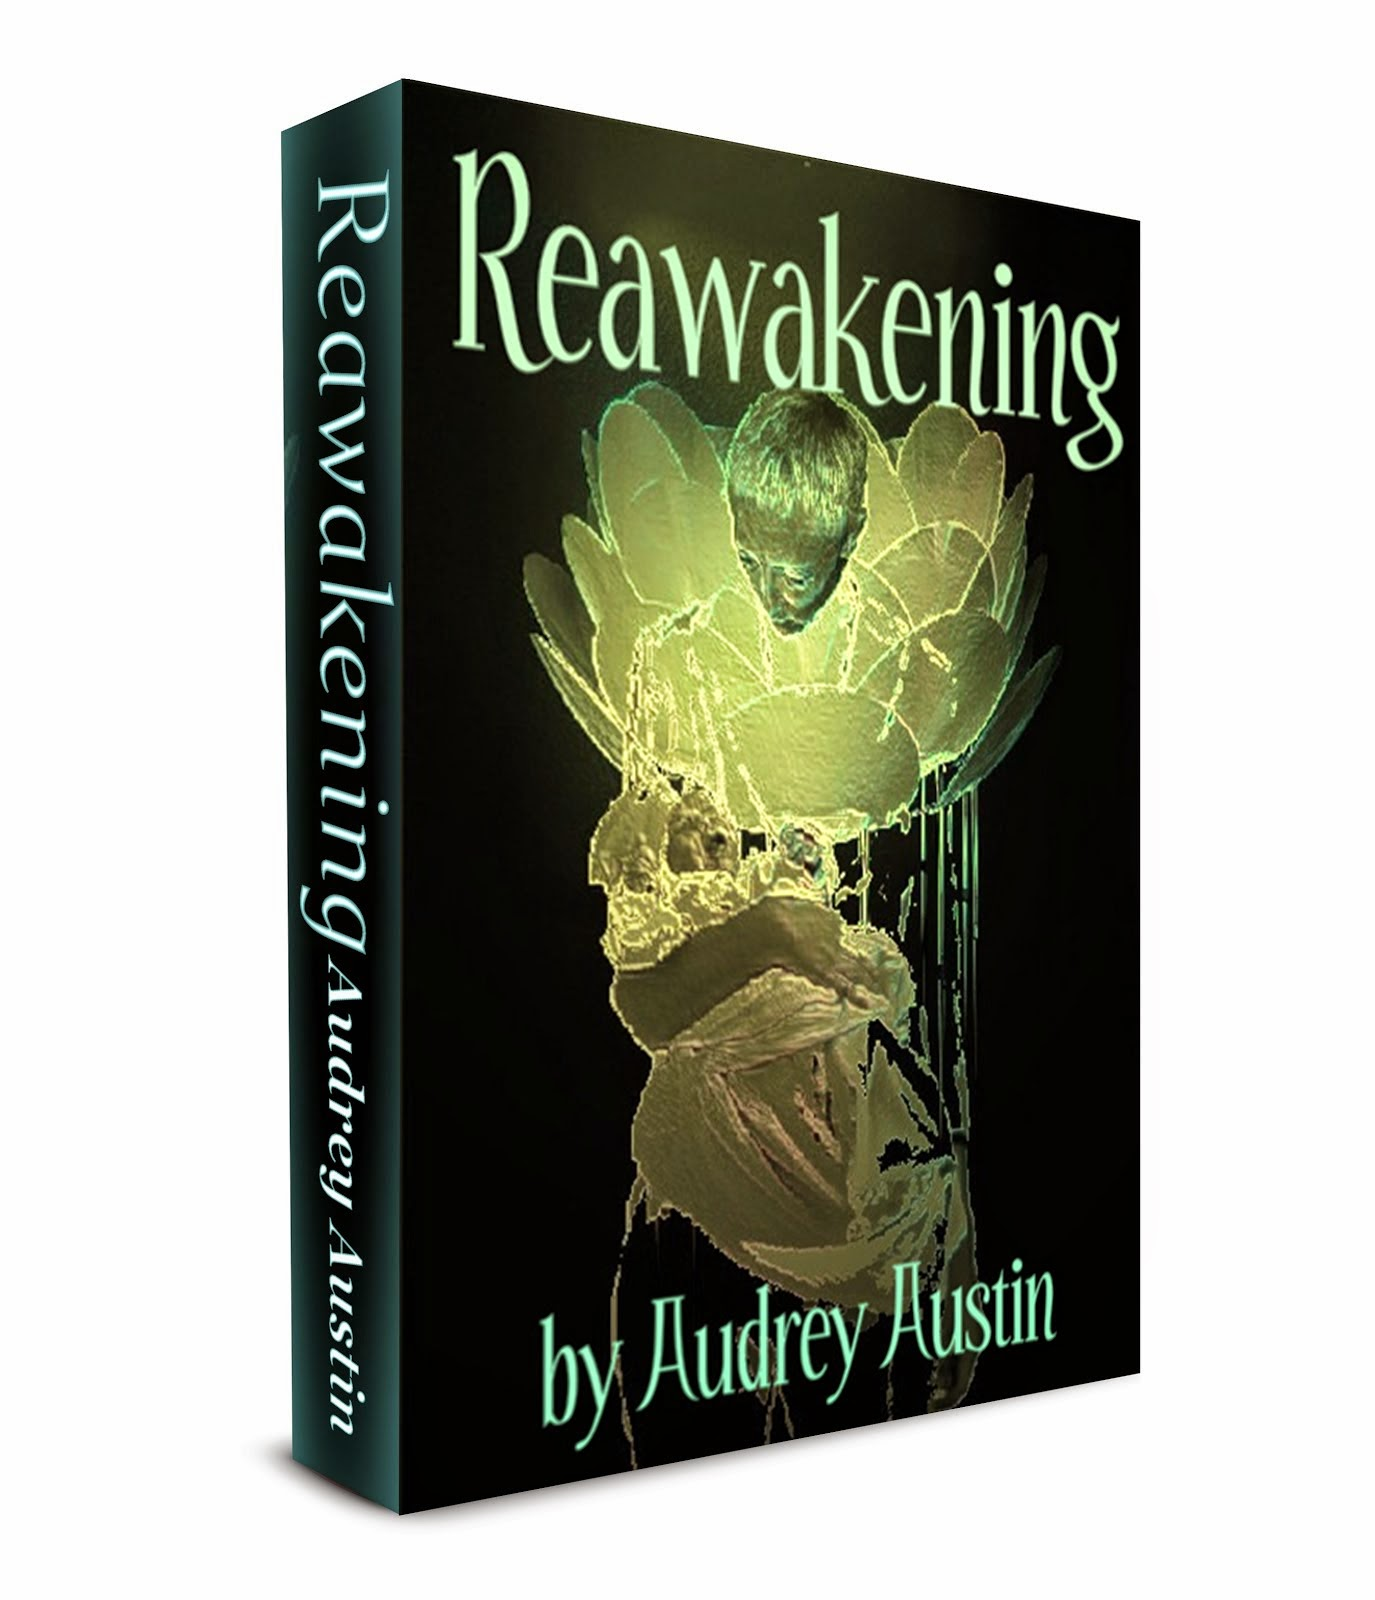 REAWAKENING